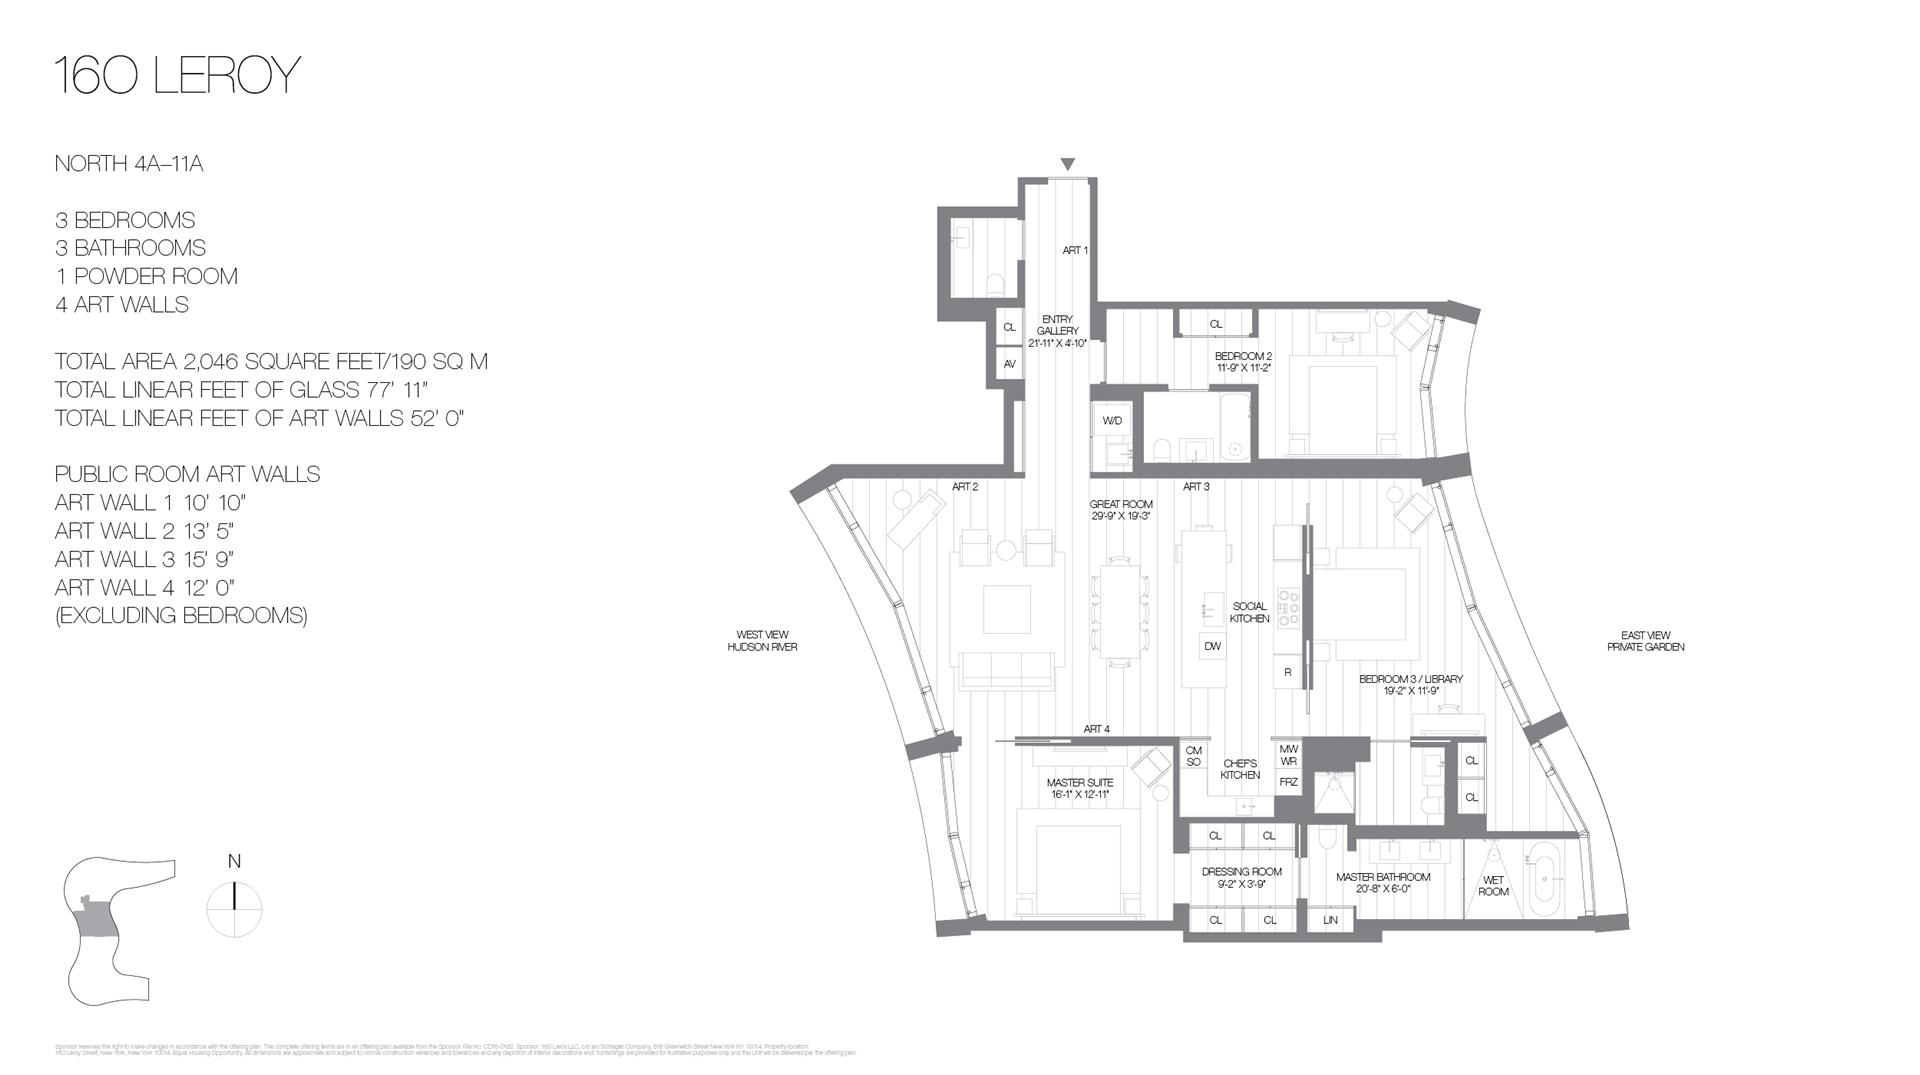 Floor plan of 160 Leroy St, NORTH8A - West Village - Meatpacking District, New York